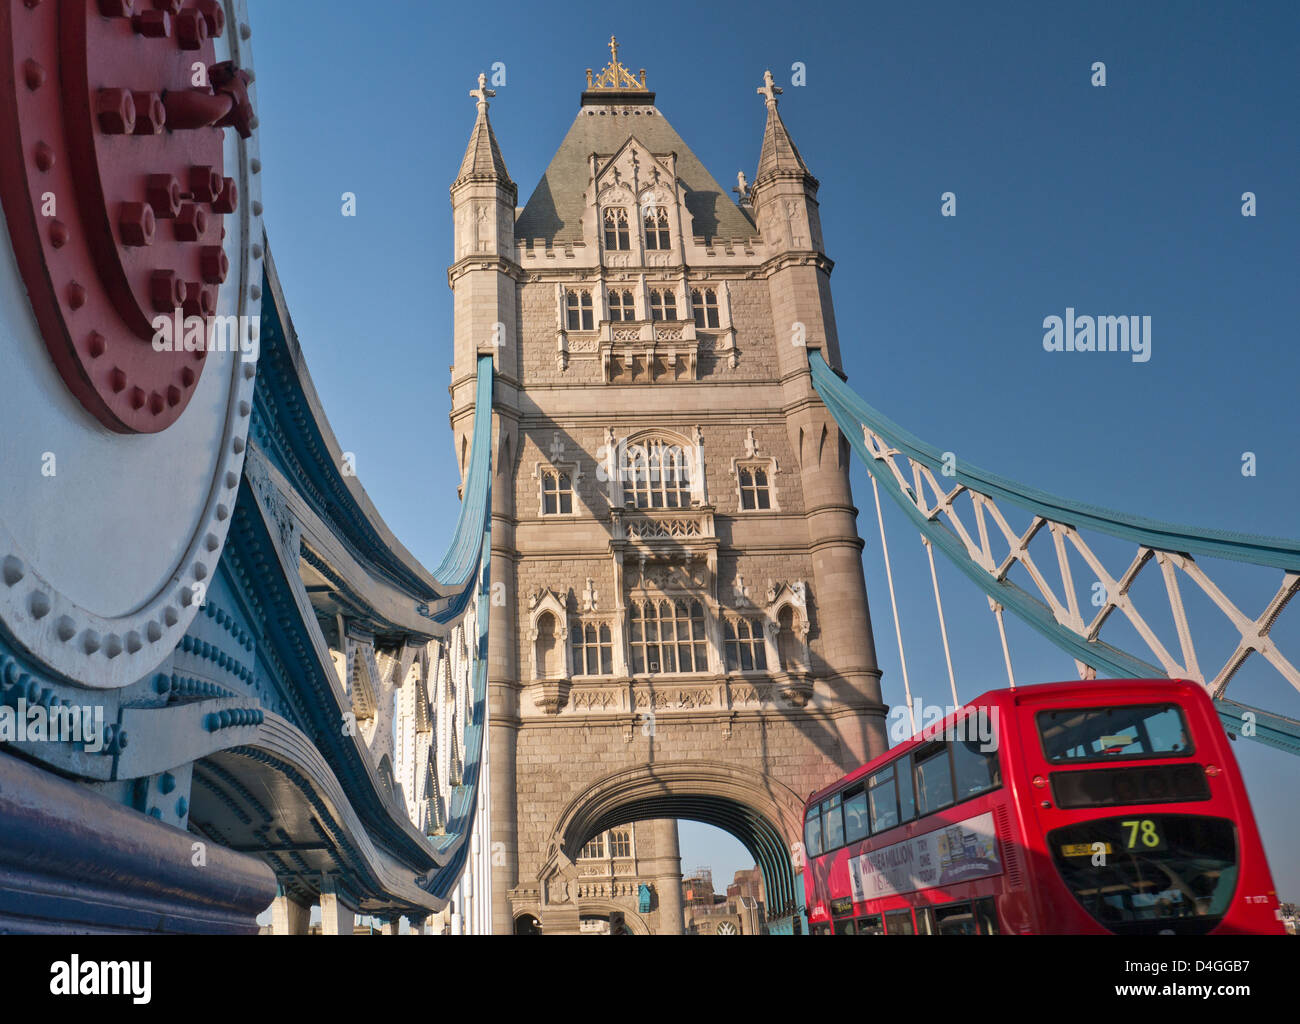 Tower Bridge and traditional red bus Southwark London UK - Stock Image